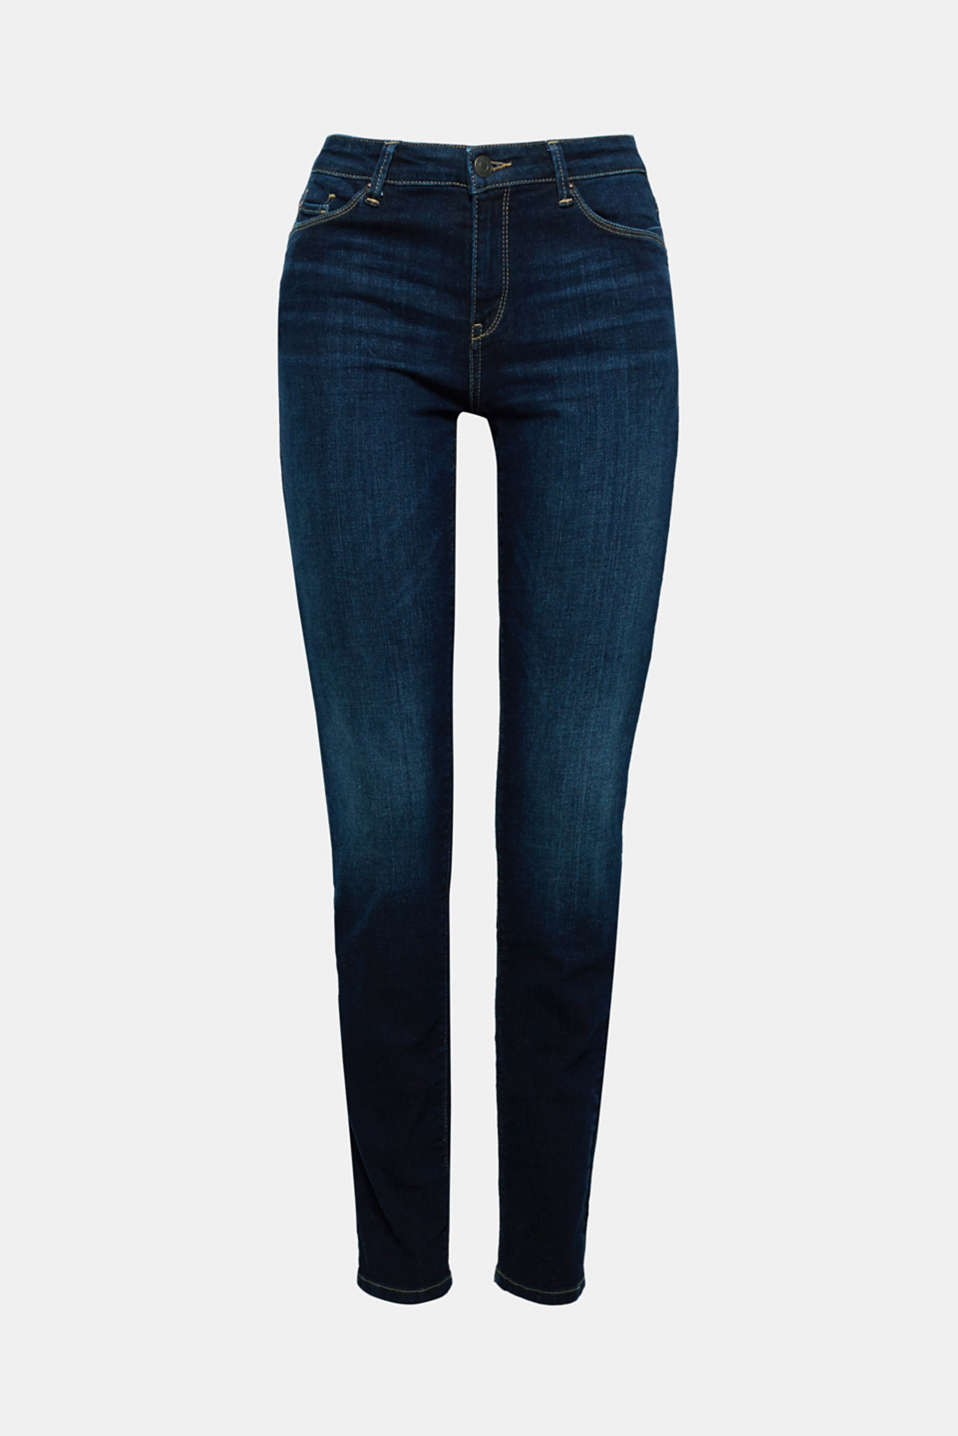 Containing premium, environmentally-friendly organic cotton: these stretch jeans are skin-tight and mega comfy!